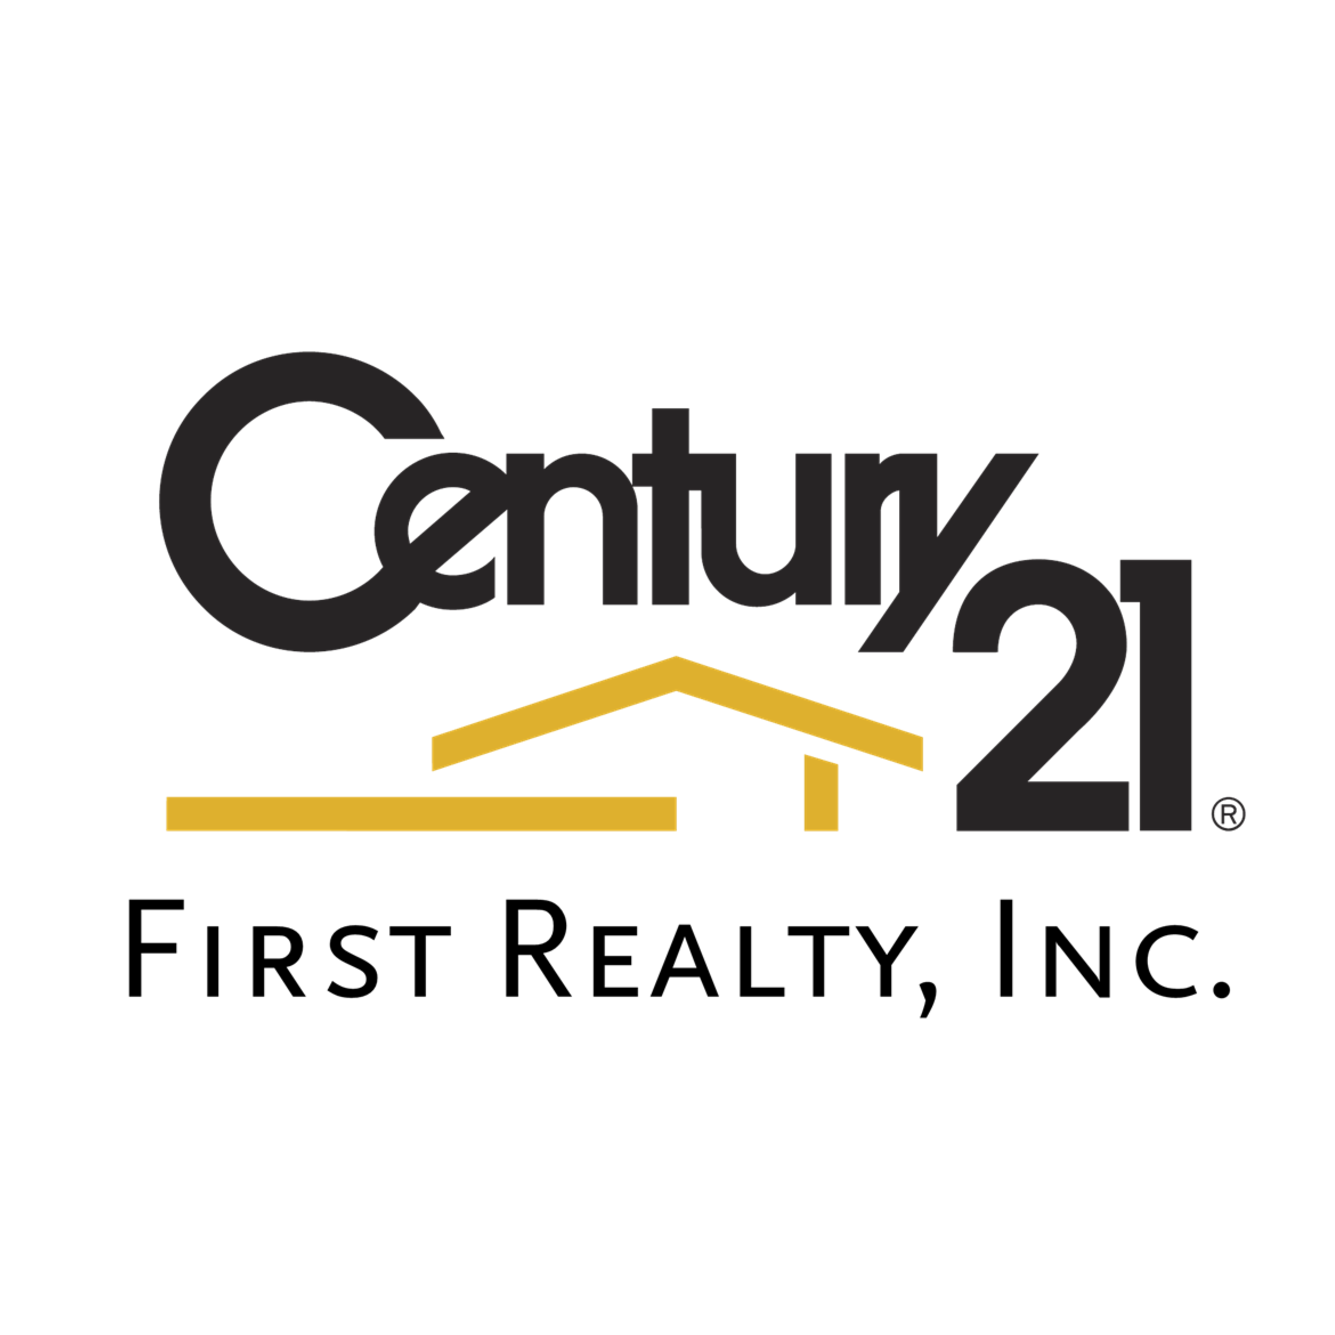 Louise Mehr | CENTURY 21 First Realty, Inc